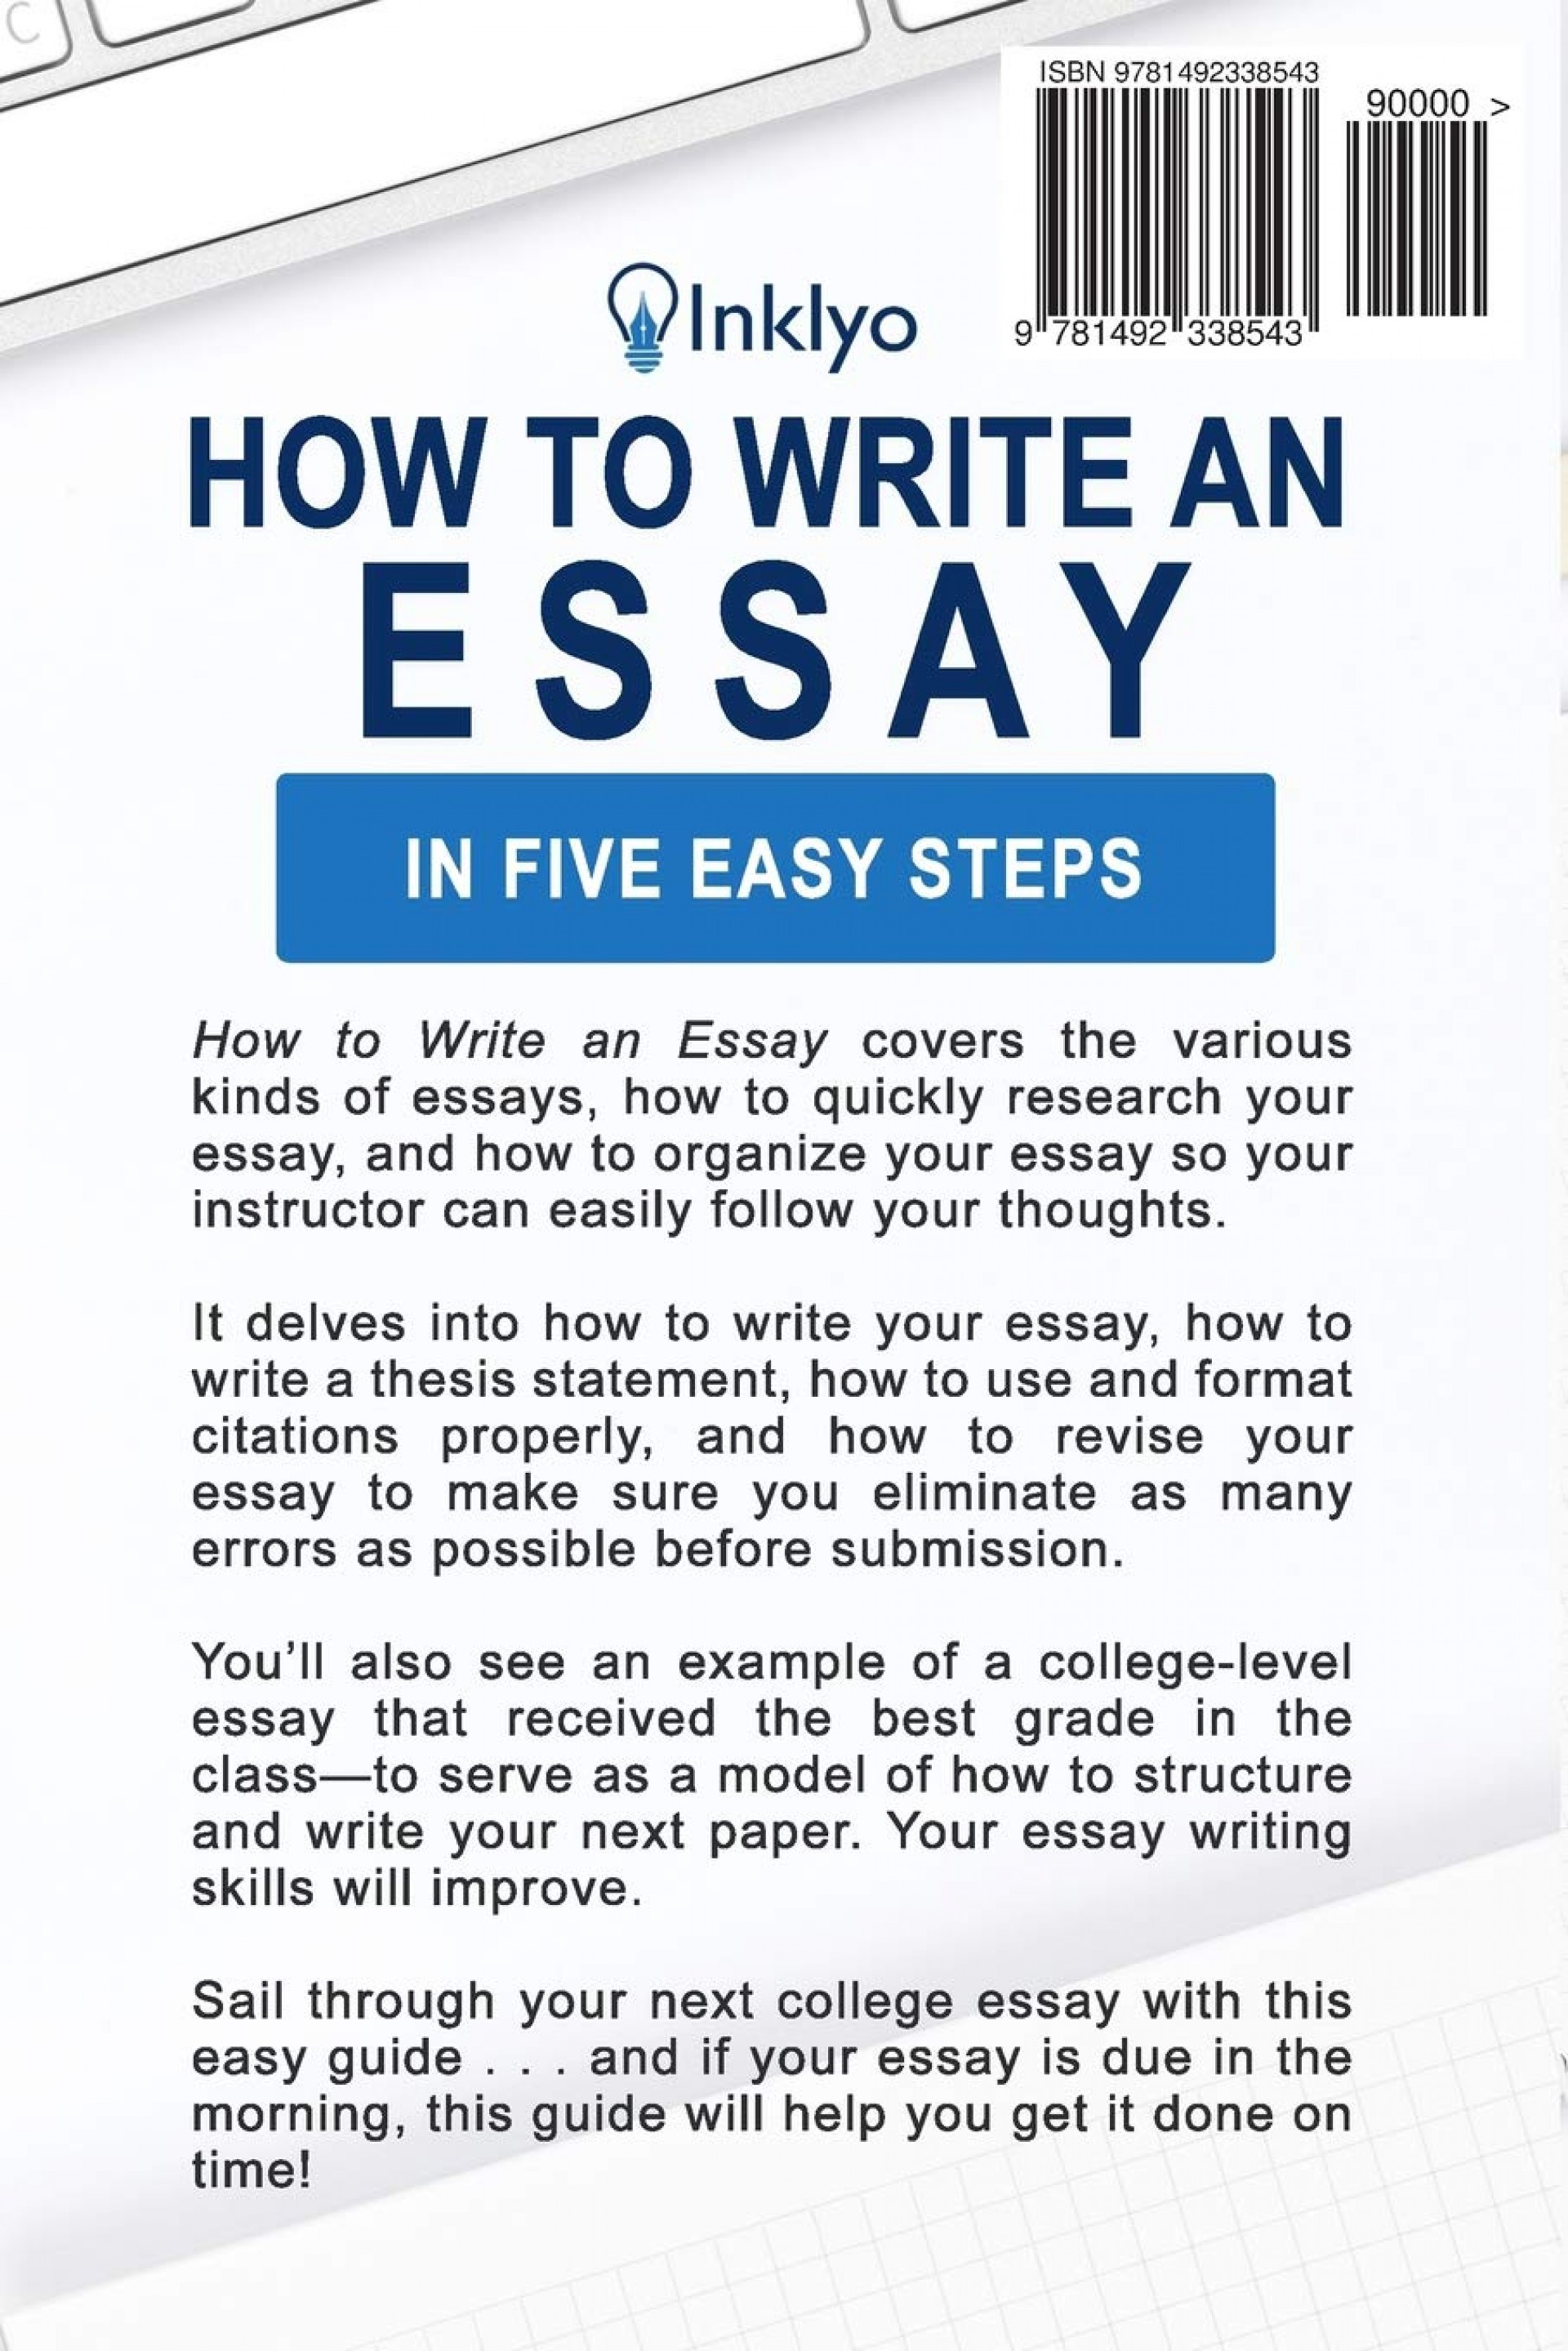 002 How To Write An Essay Example Shocking About Myself For A Scholarship Excellent Conclusion Pdf 1920